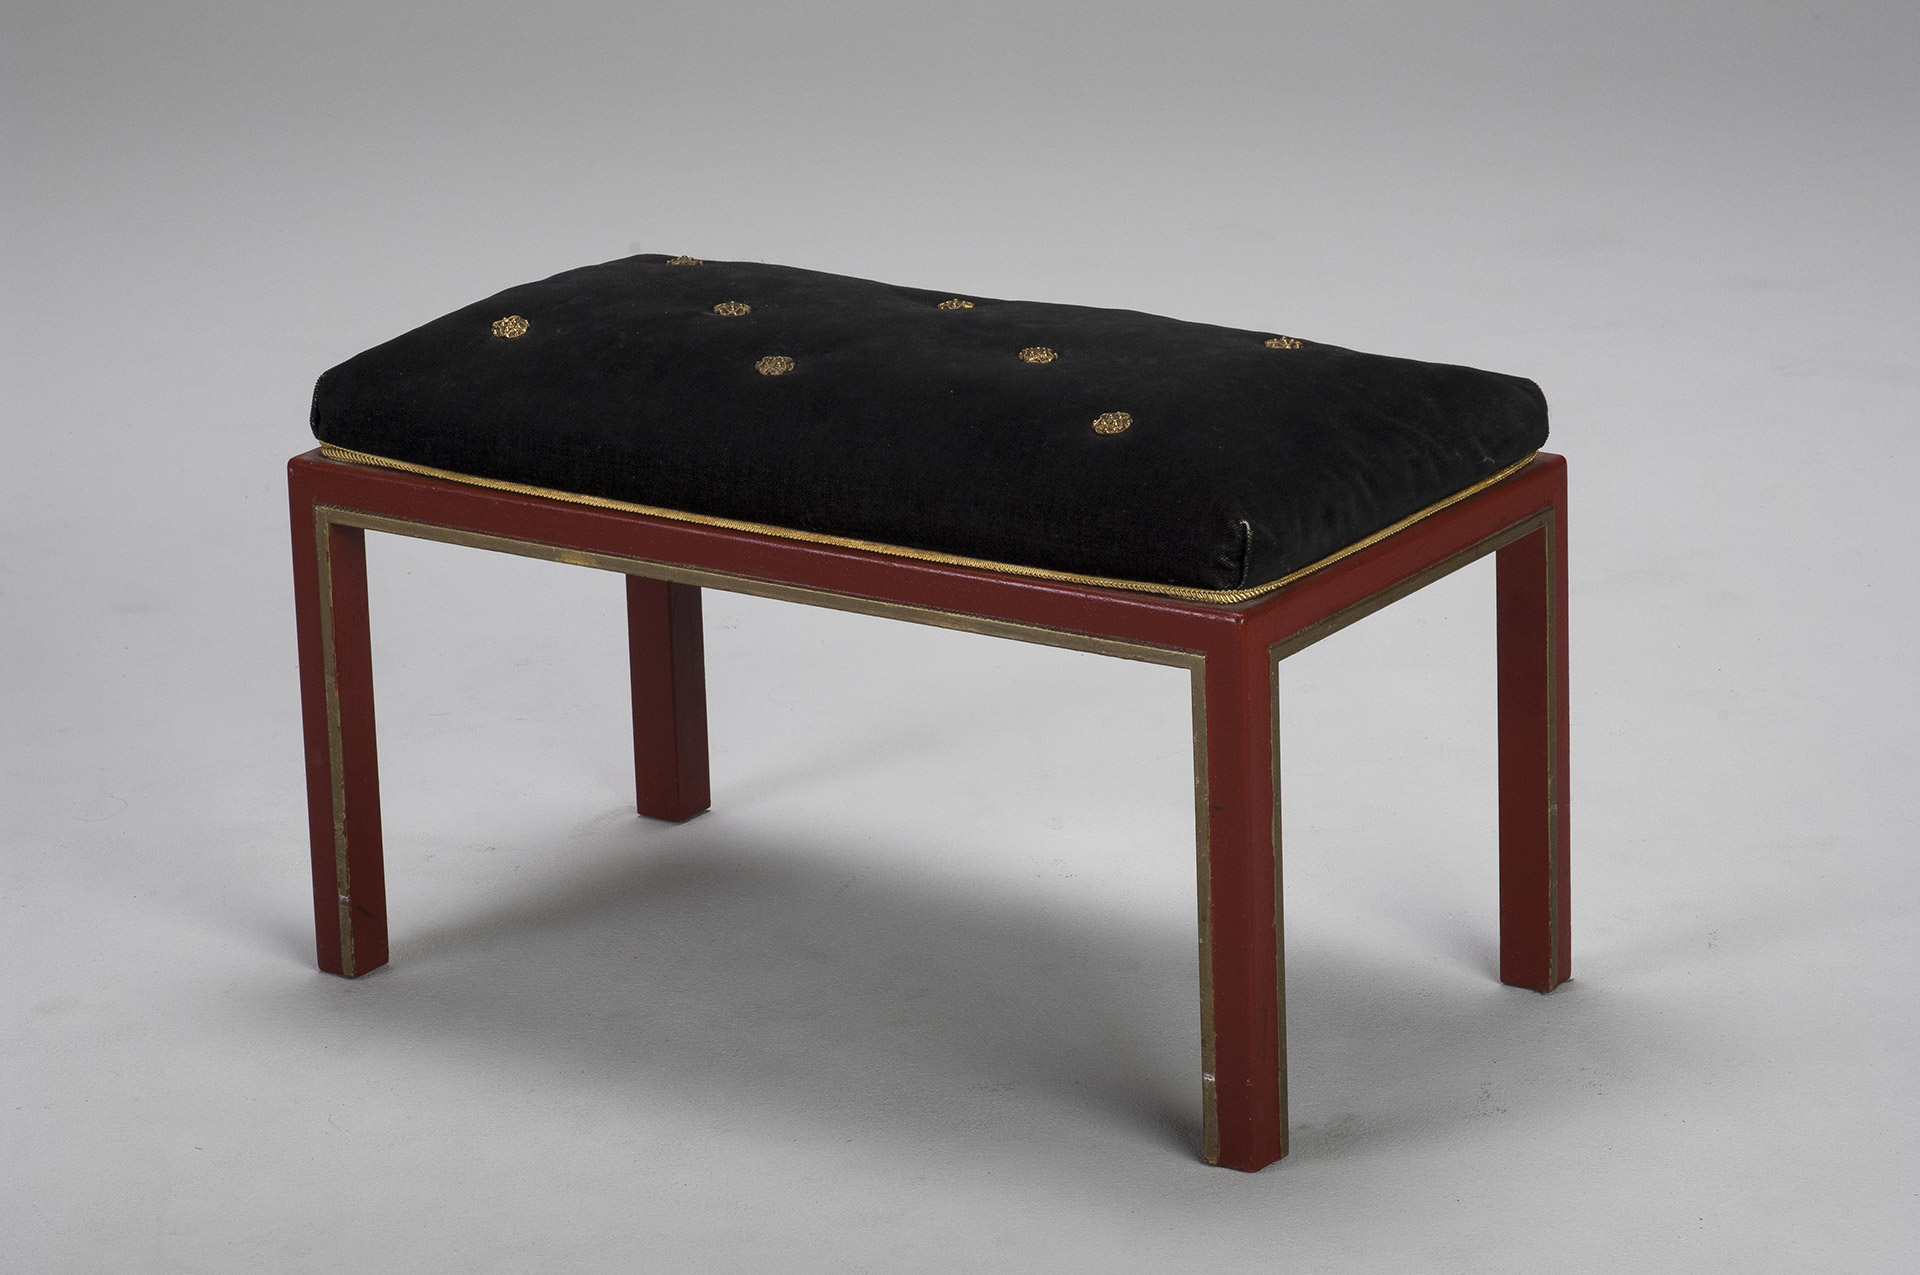 Swedish Thirties Stool